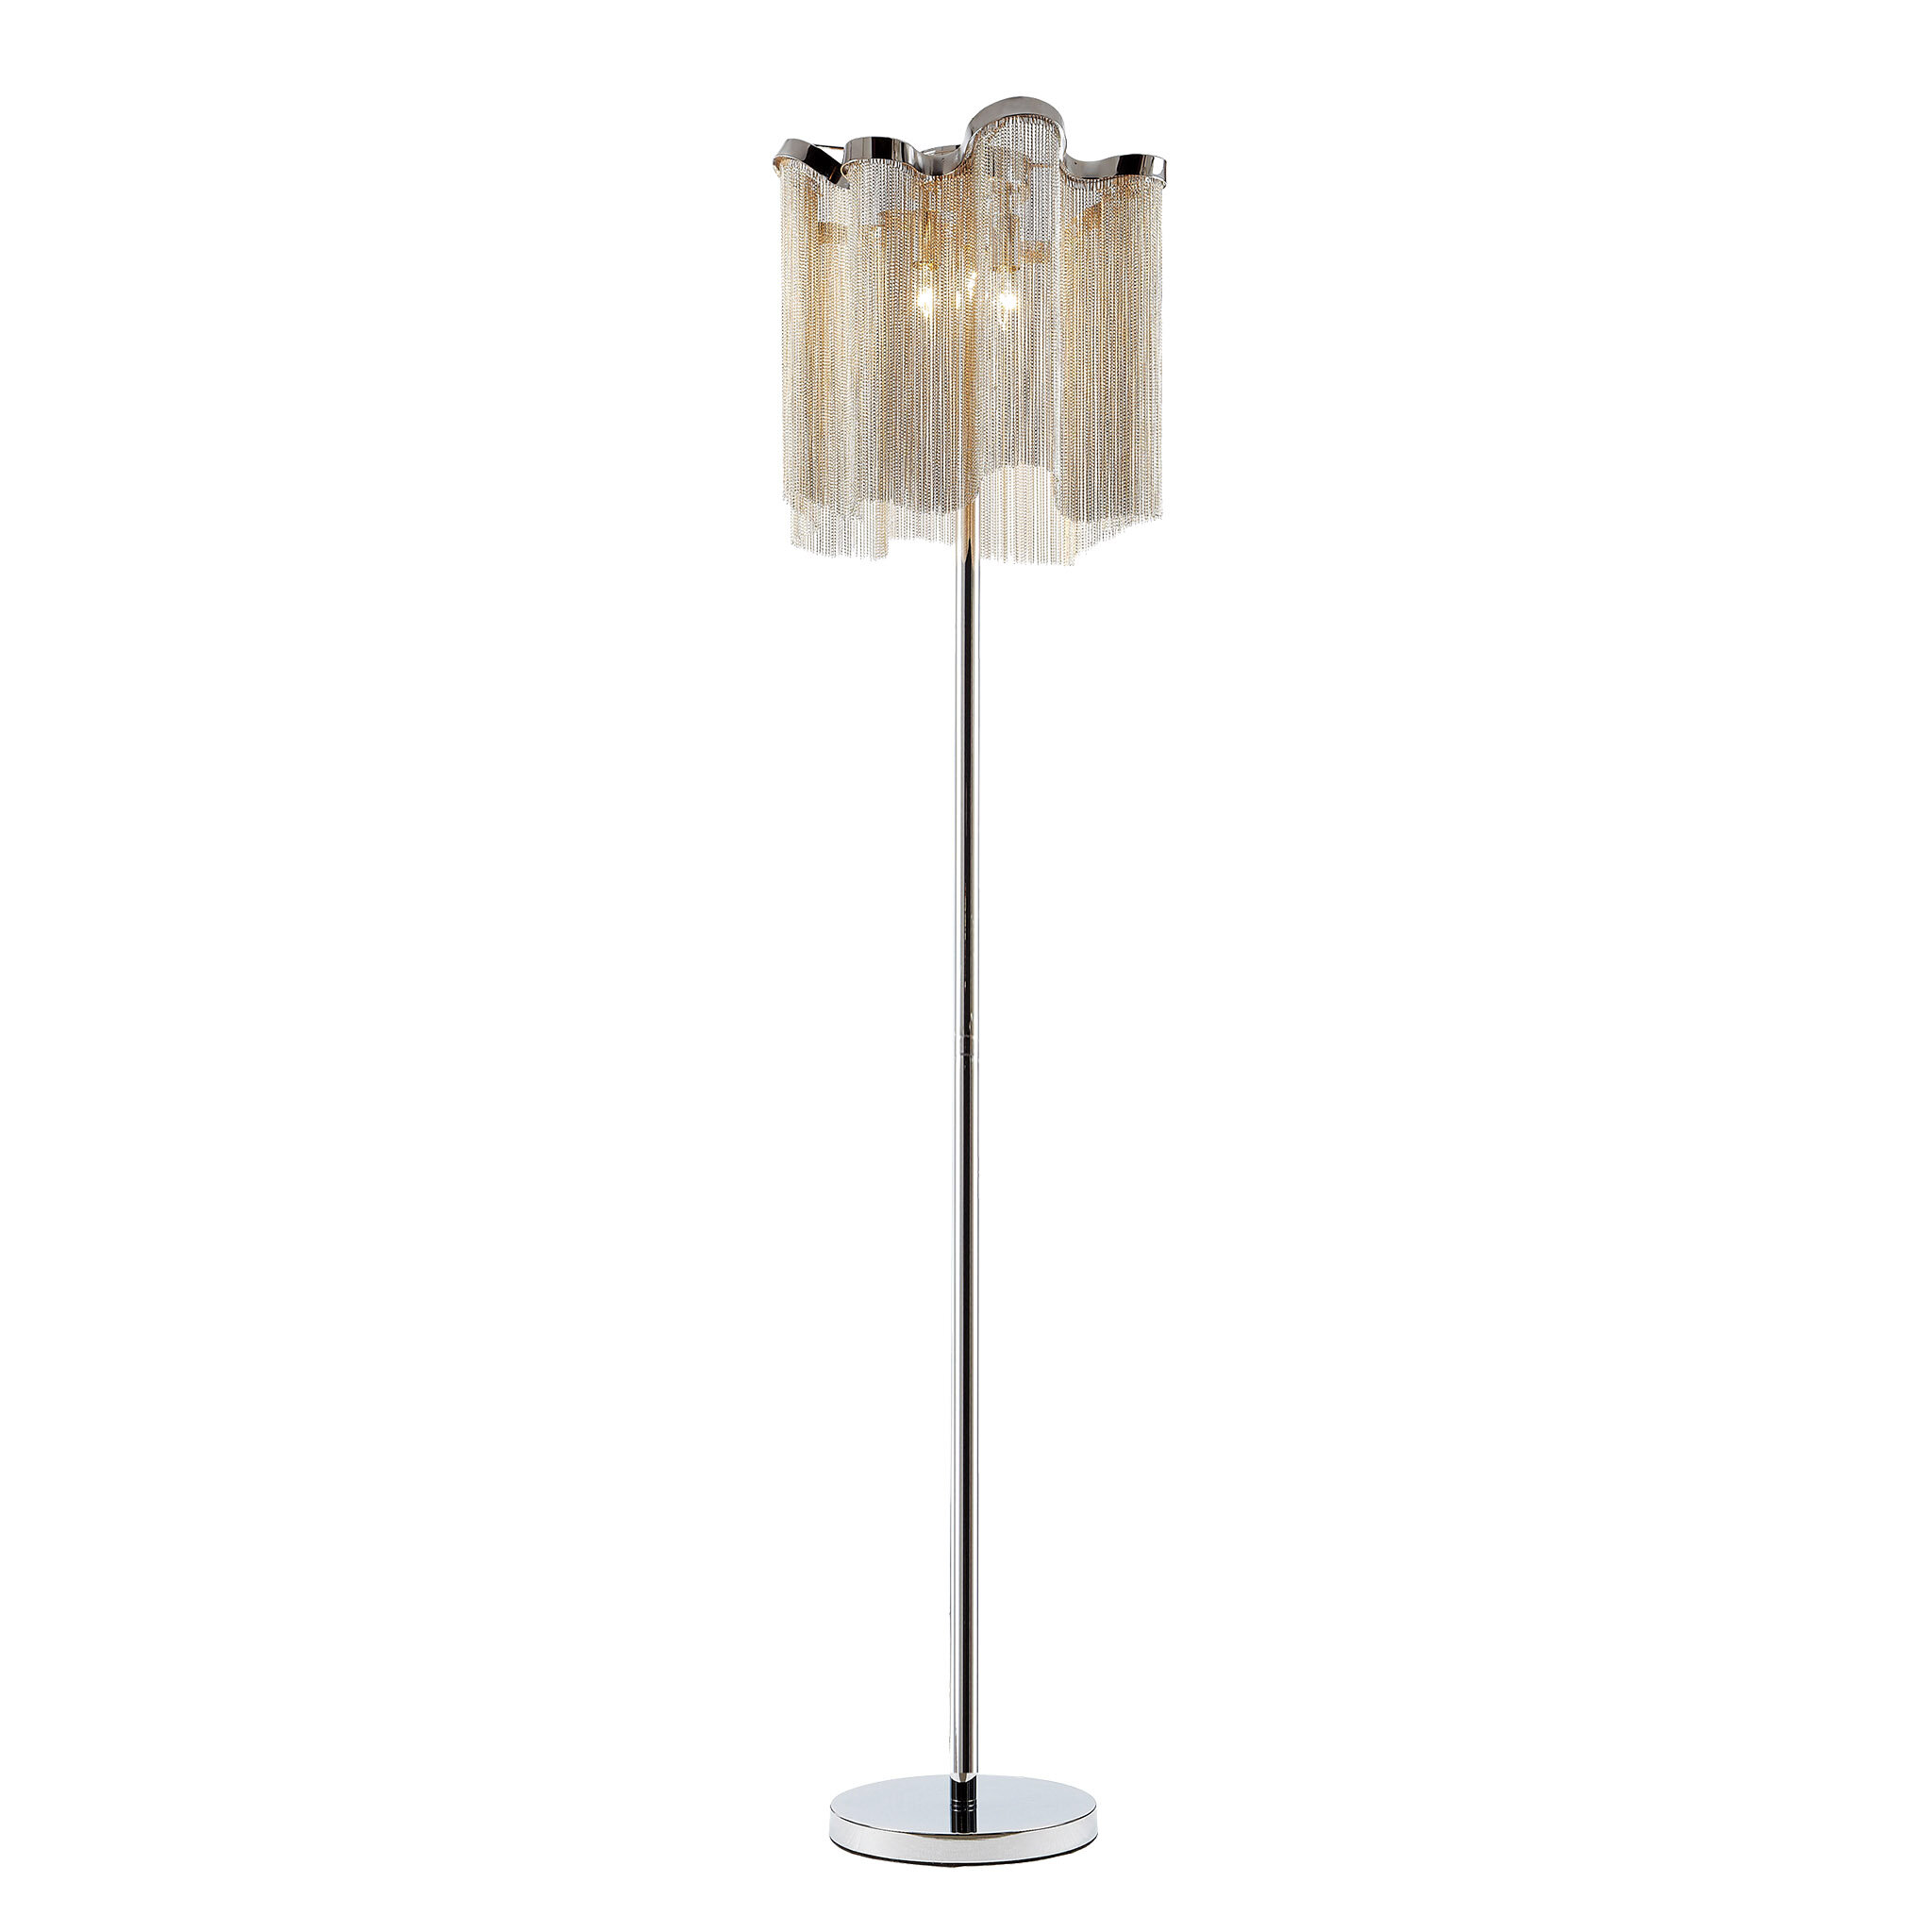 Willa Arlo Interiors 161 Cm Stehlampe Alysa Wayfair De